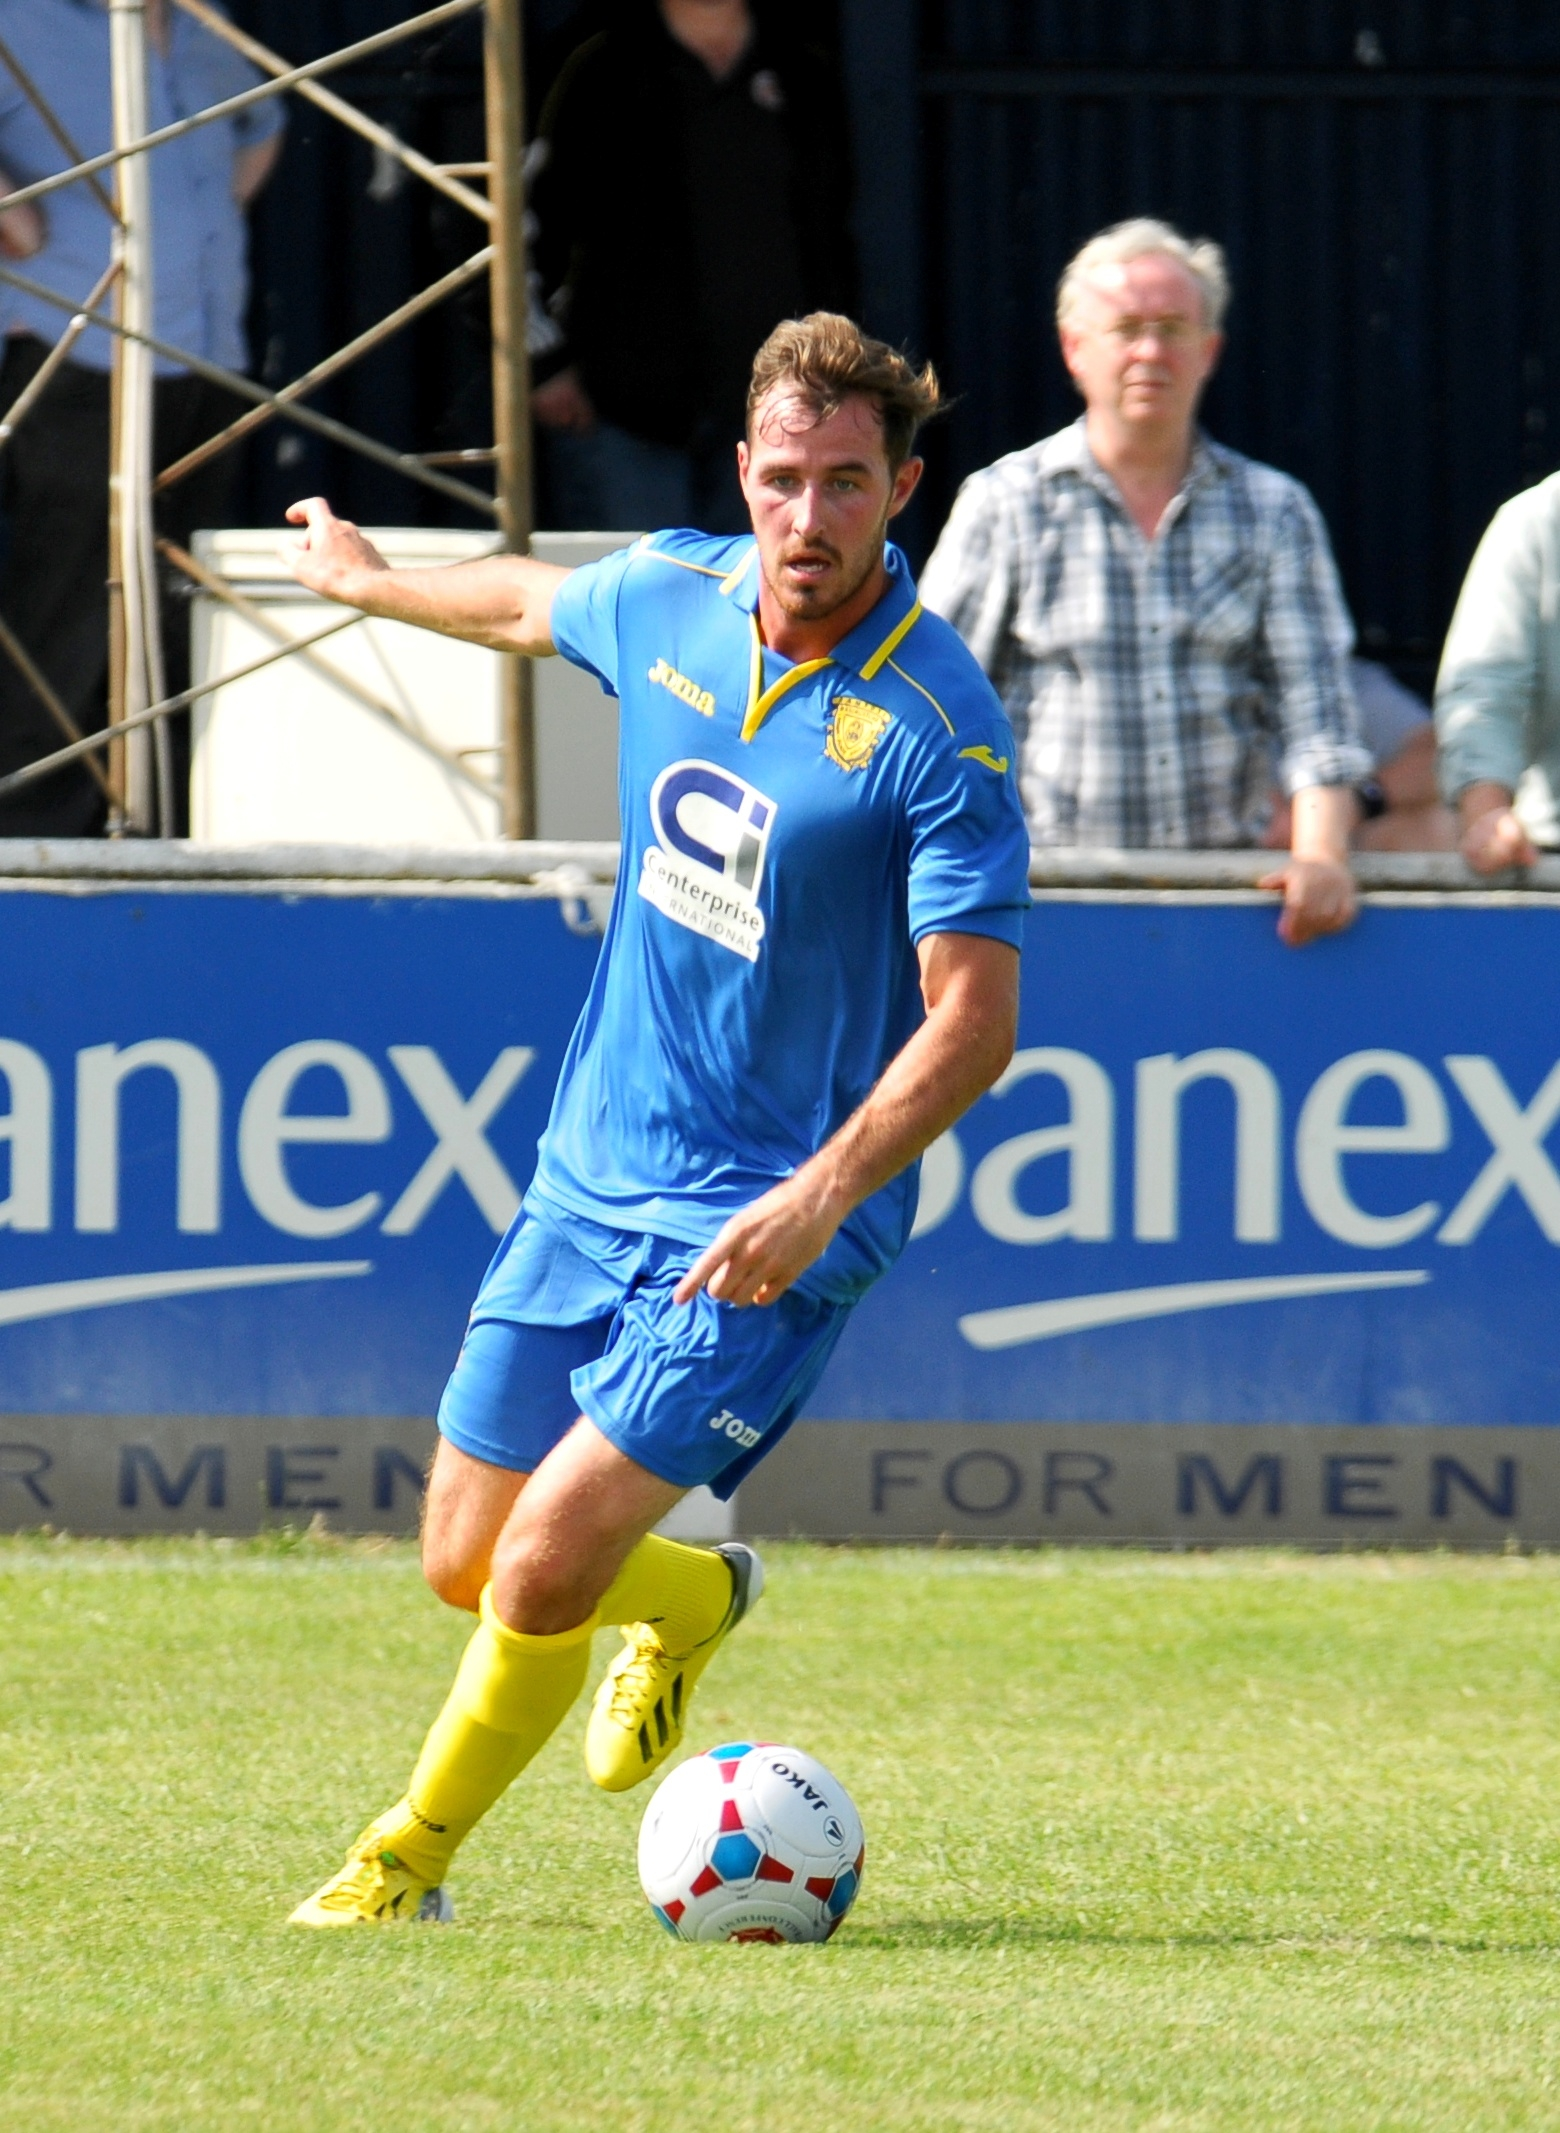 Shaun McAuley scored Basingstoke's second goal in their 3-1 win at Eastbourne on Saturday.